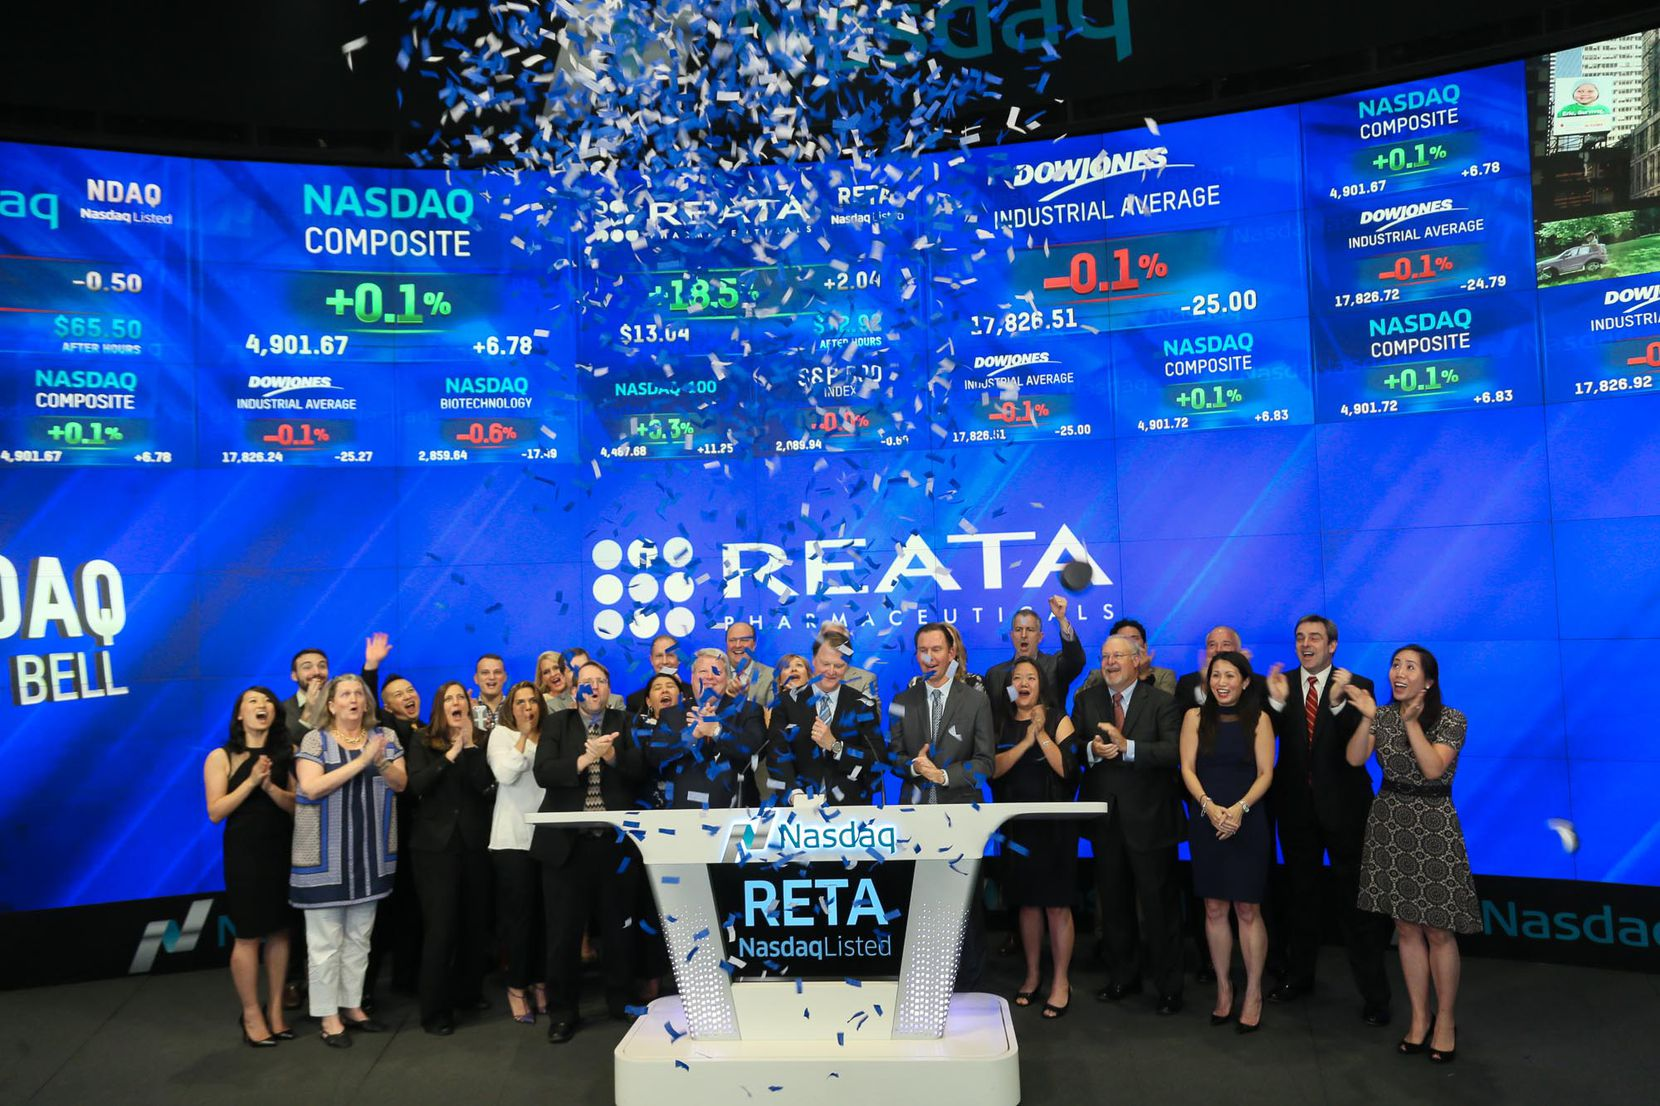 Reata Pharmaceuticals is one of the newcomers to this year's ranking. Led by chief executive J. Warren Huff, company leaders rang the bell at Nasdaq on May 26, 2016.